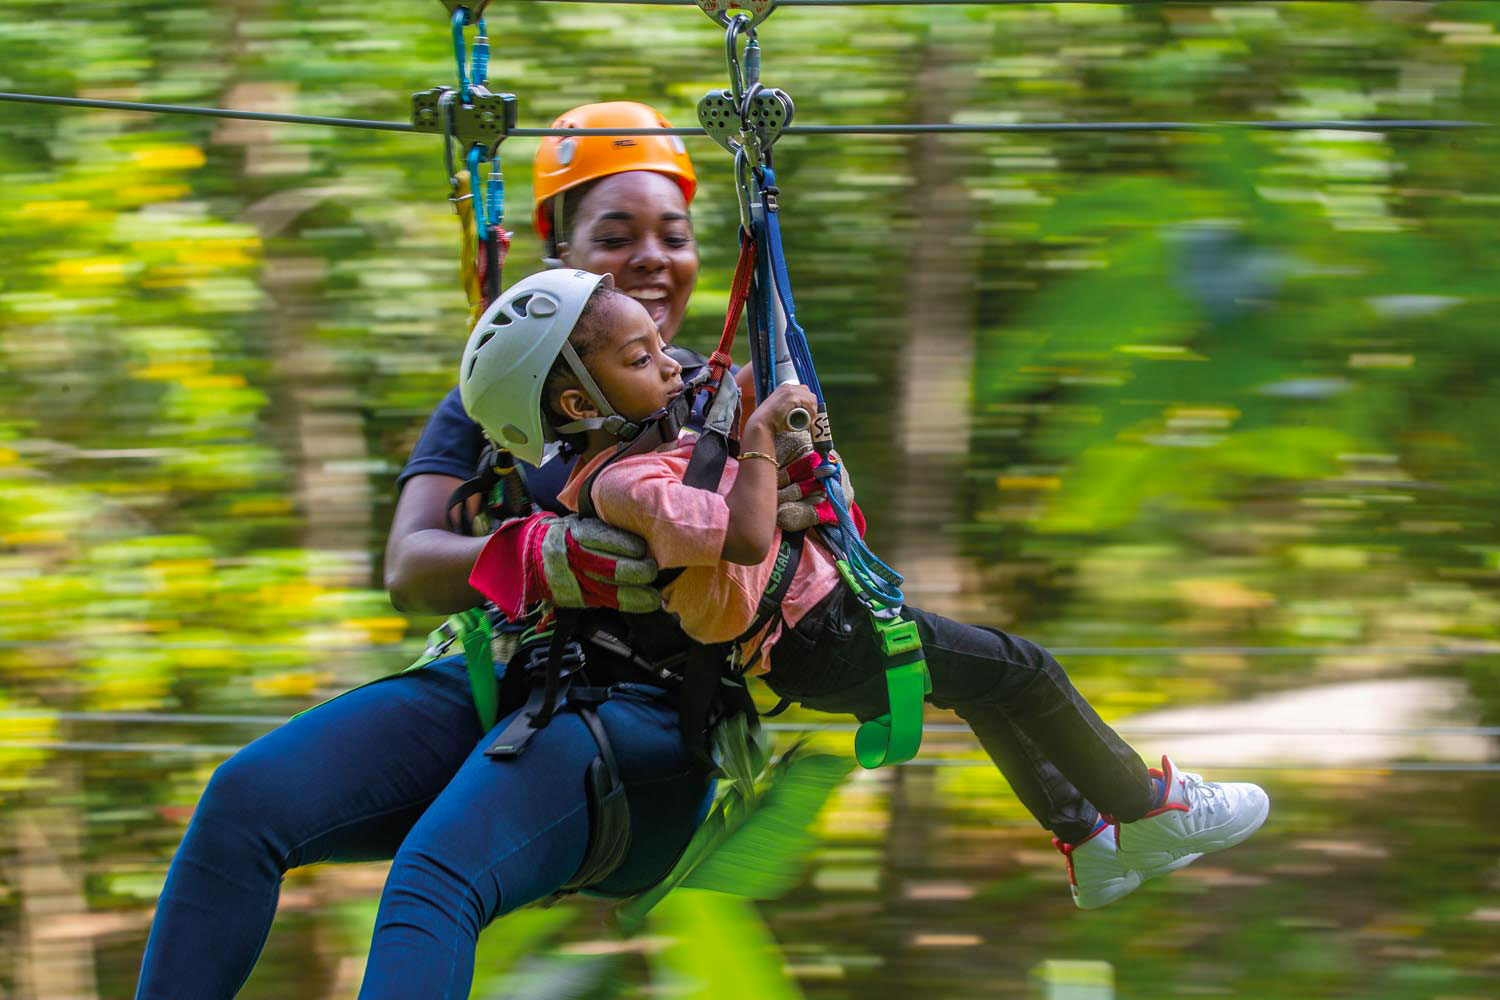 Life goes by fast on the zipline at St Lucia's Rainforest Adventures. Photo courtesy St Lucia Tourism Authority